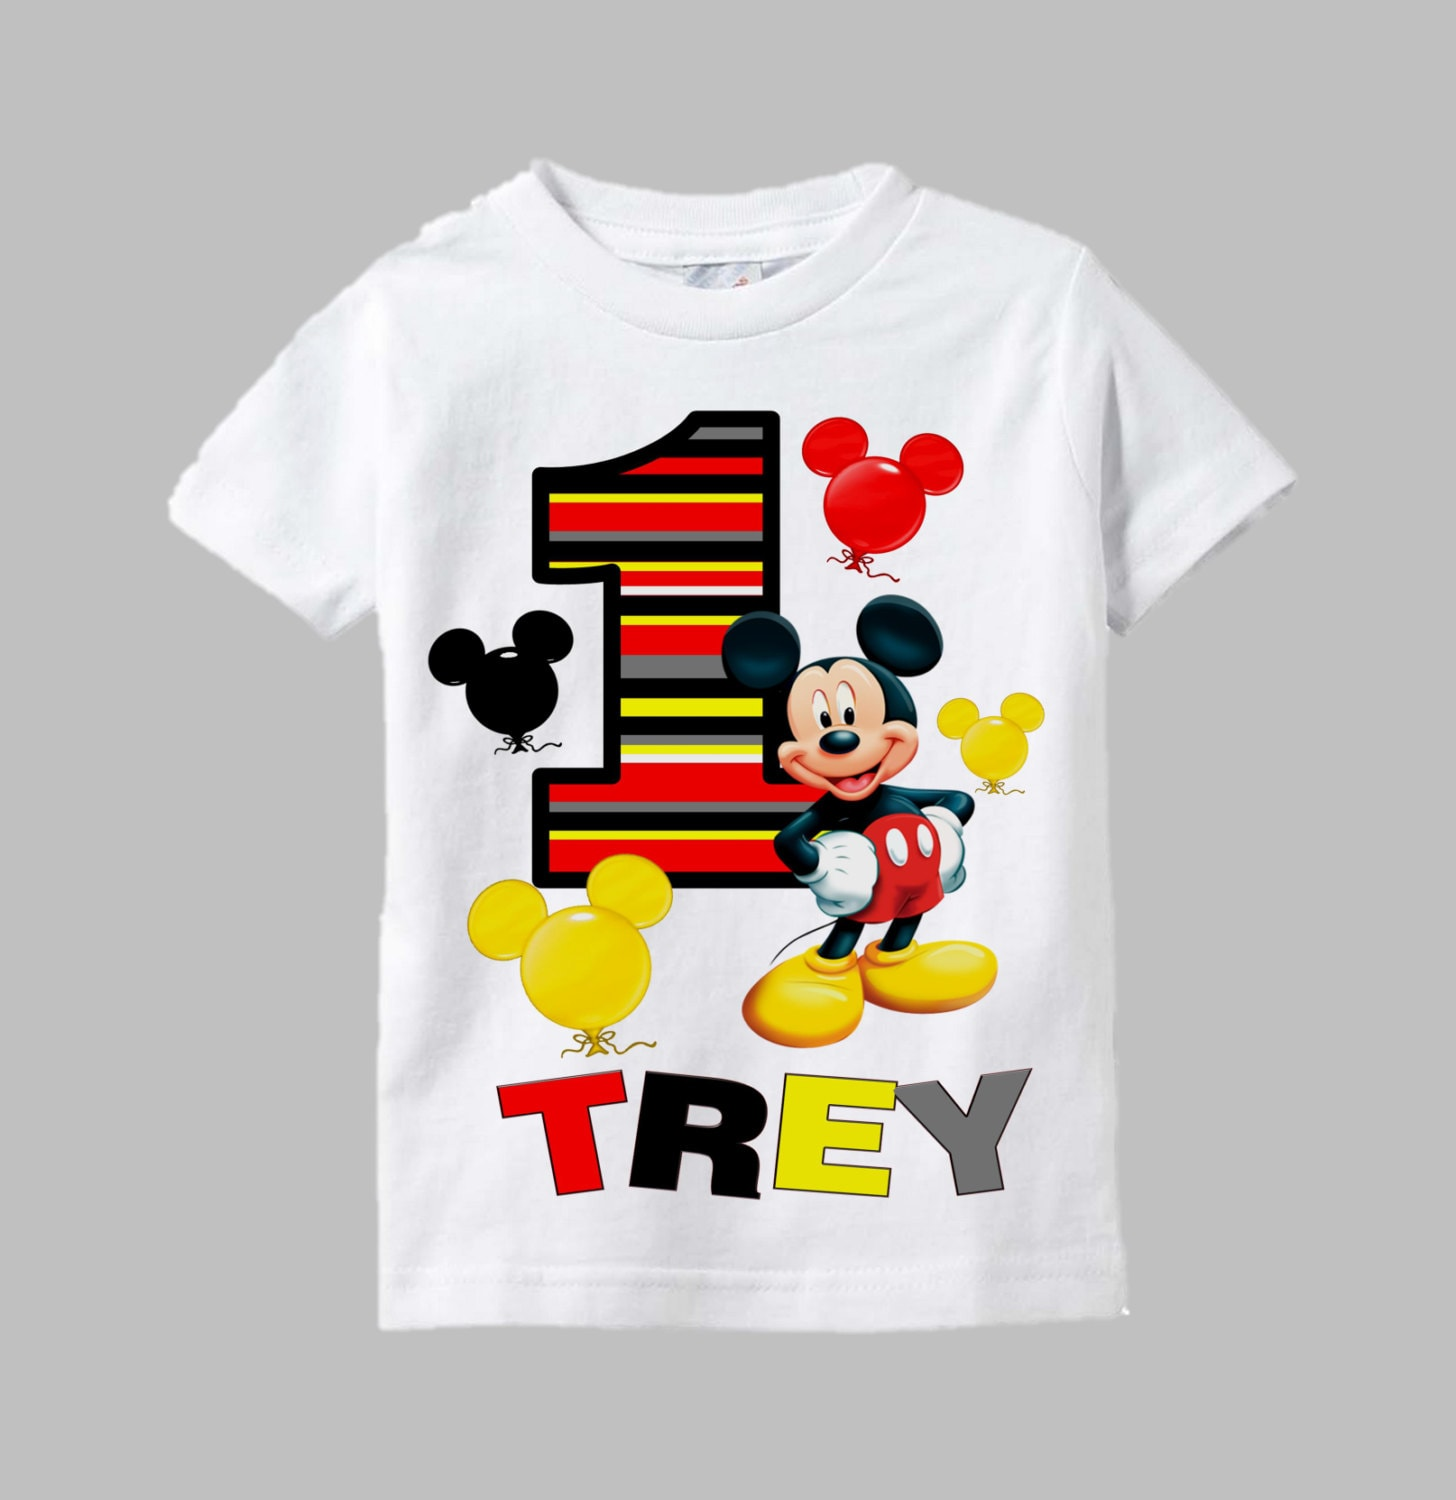 Mickey mouse birthday shirt mickey mouse shirt mickey for Where can i order custom t shirts